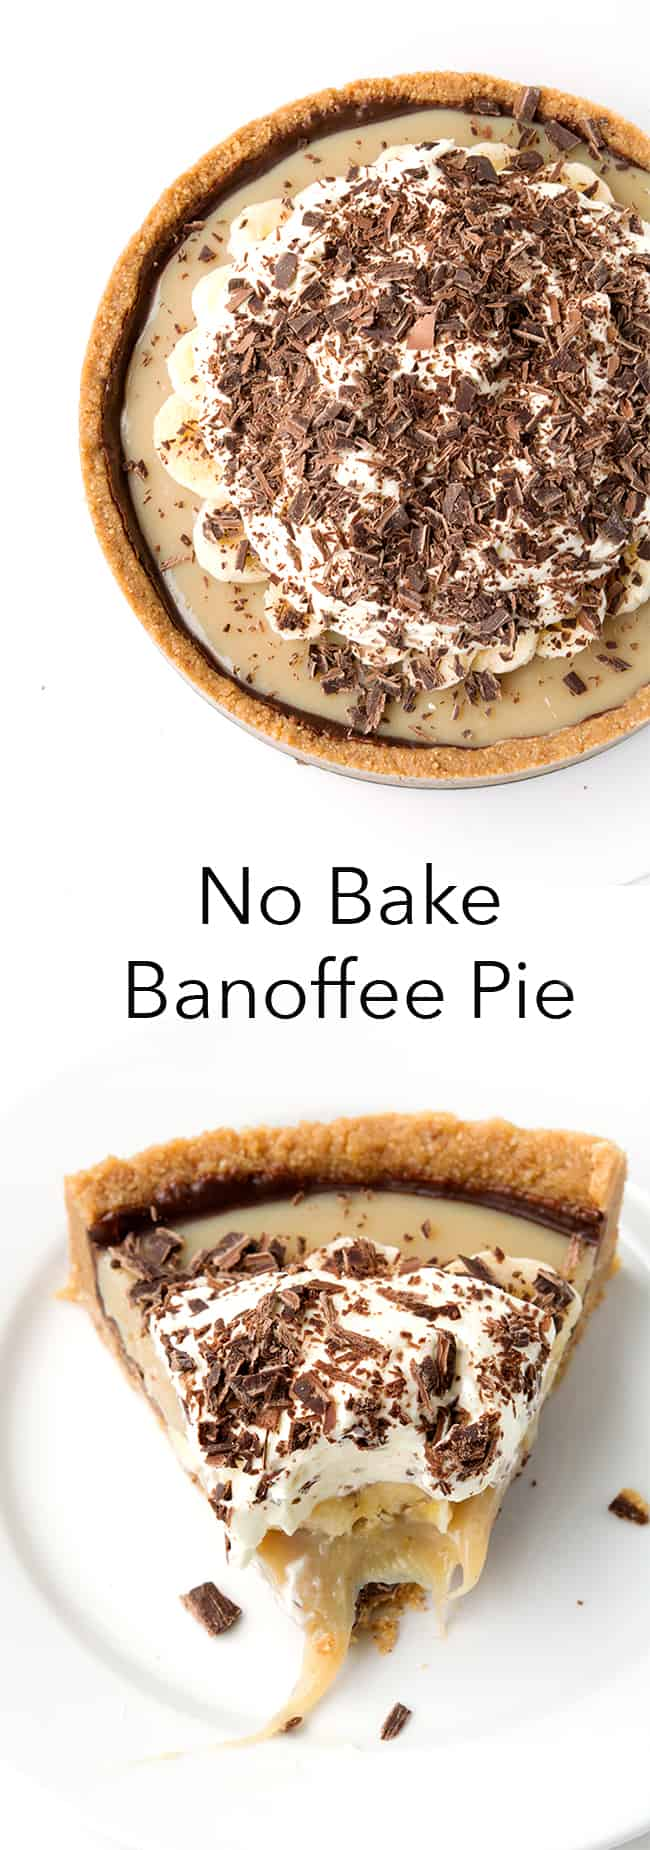 No Bake Banoffee Pie | Sweetest Menu